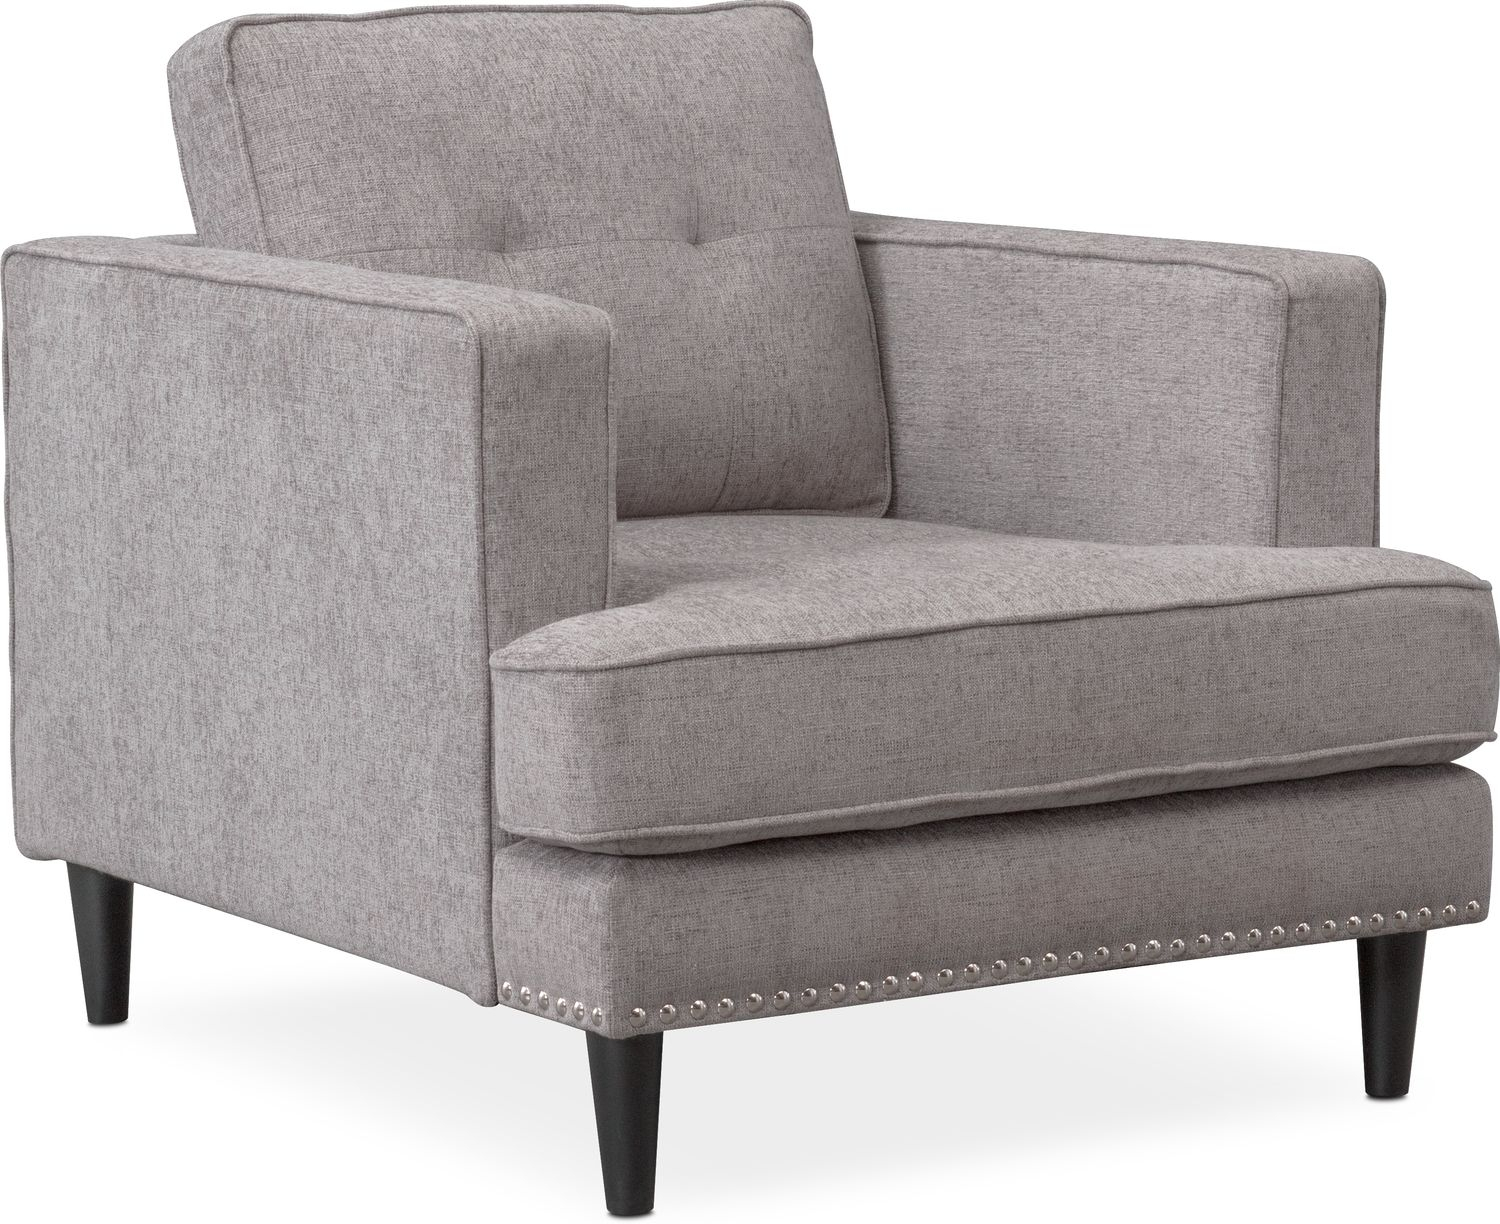 Parker Sofa, Chair And Ottoman Set | Value City Furniture And Mattresses Throughout Parker Sofa Chairs (View 13 of 25)